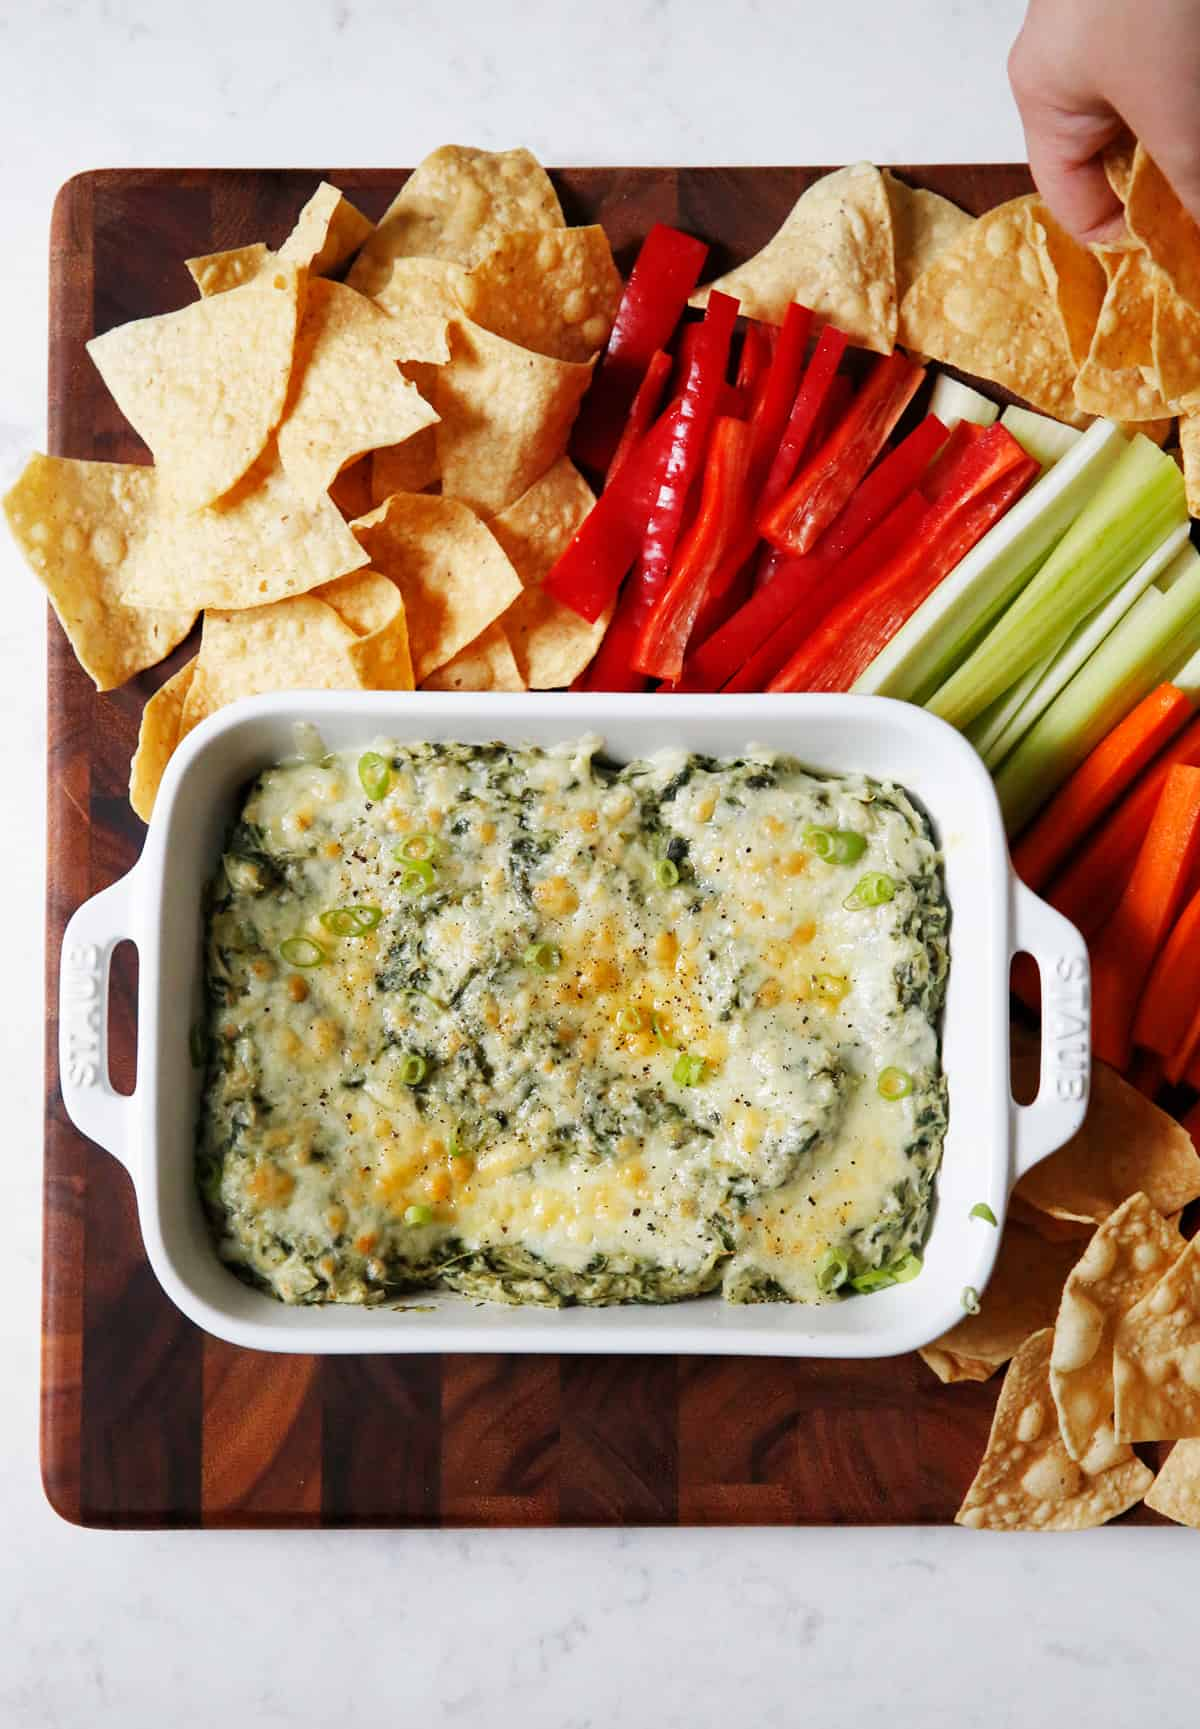 Healthy spinach dip with chips and veggies.